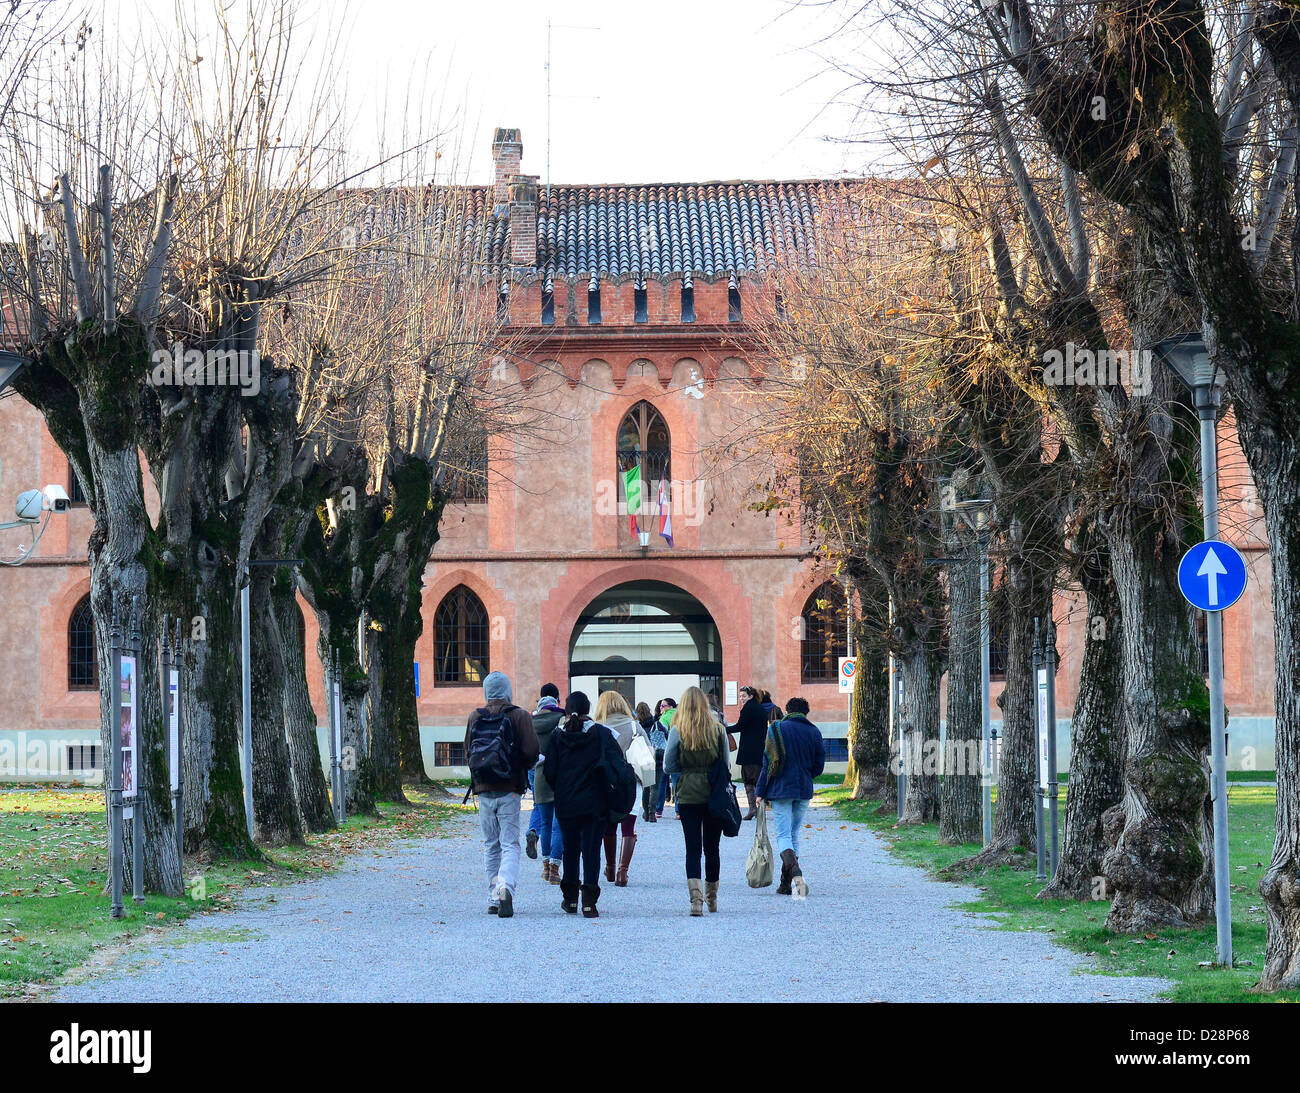 Students entering the campus of the Gastronomic University in Pollenzo, Italy. - Stock Image